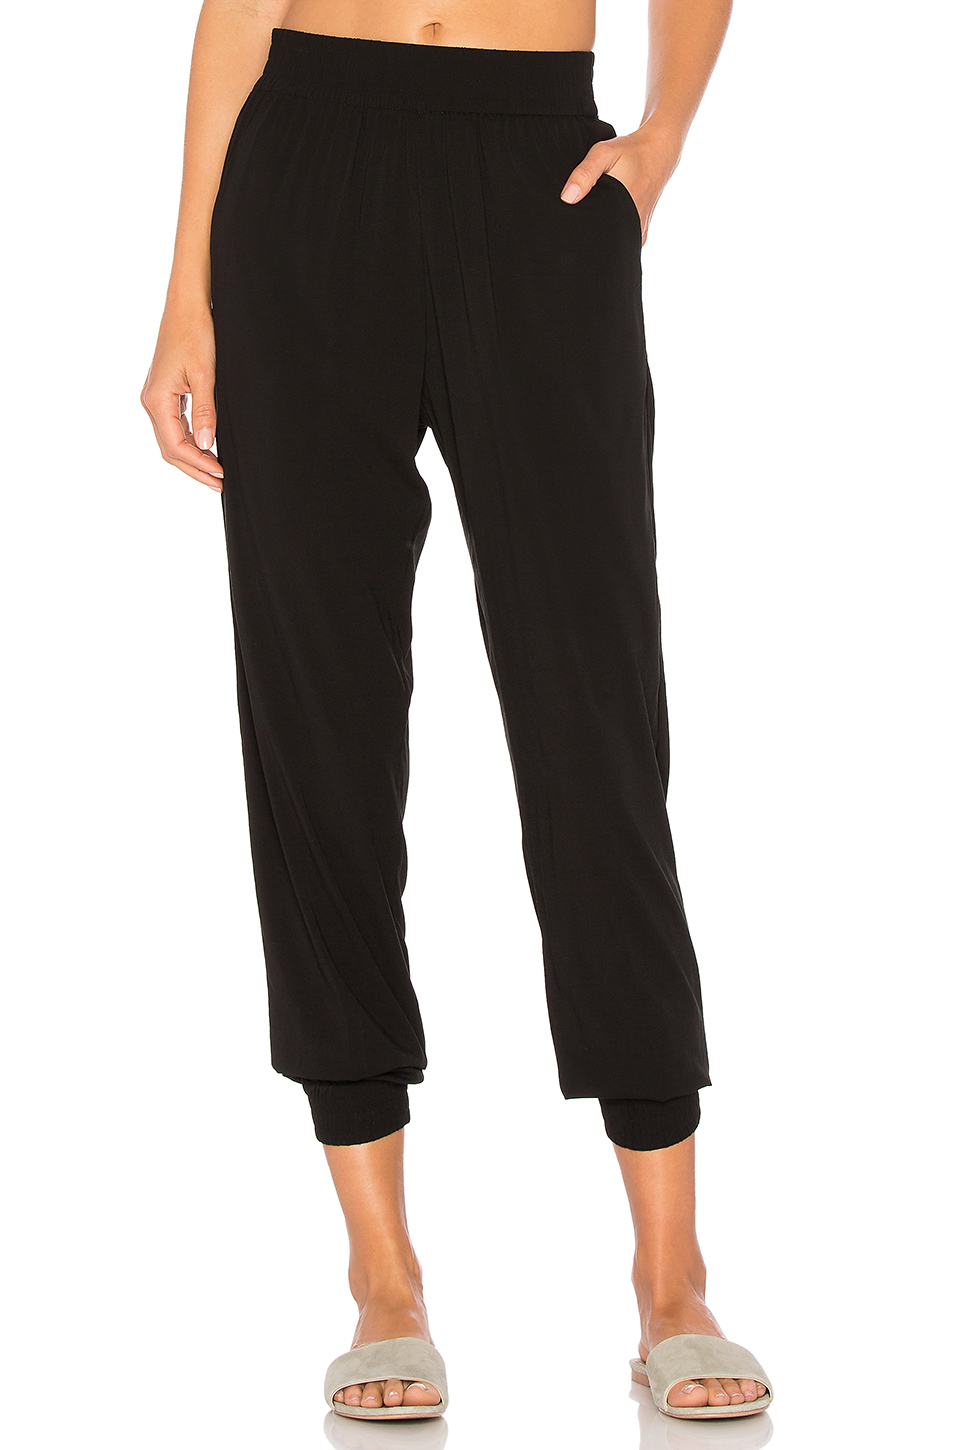 Indah Oskar Jogger in Black